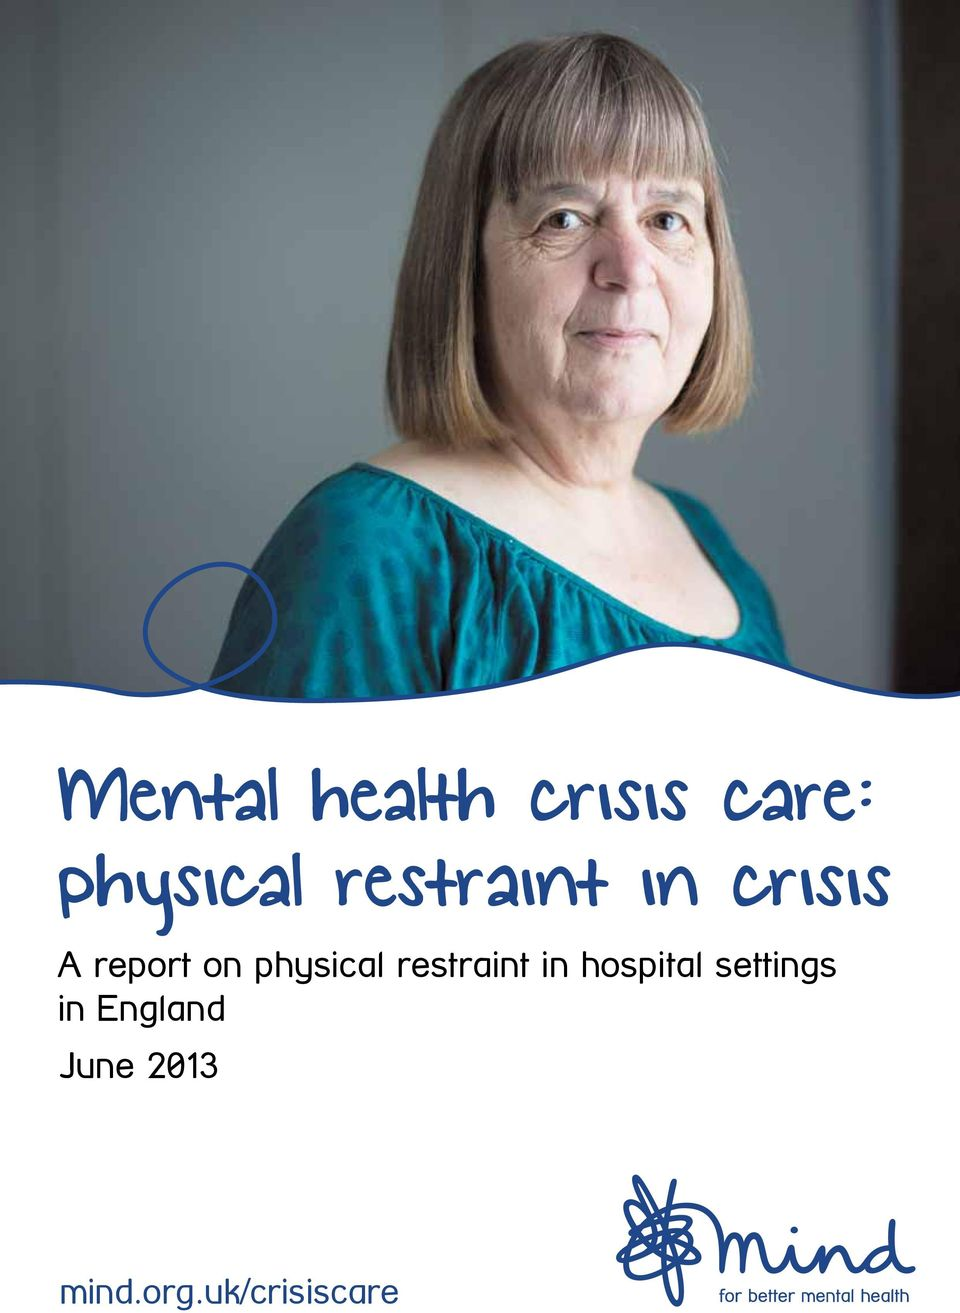 physical restraint in hospital